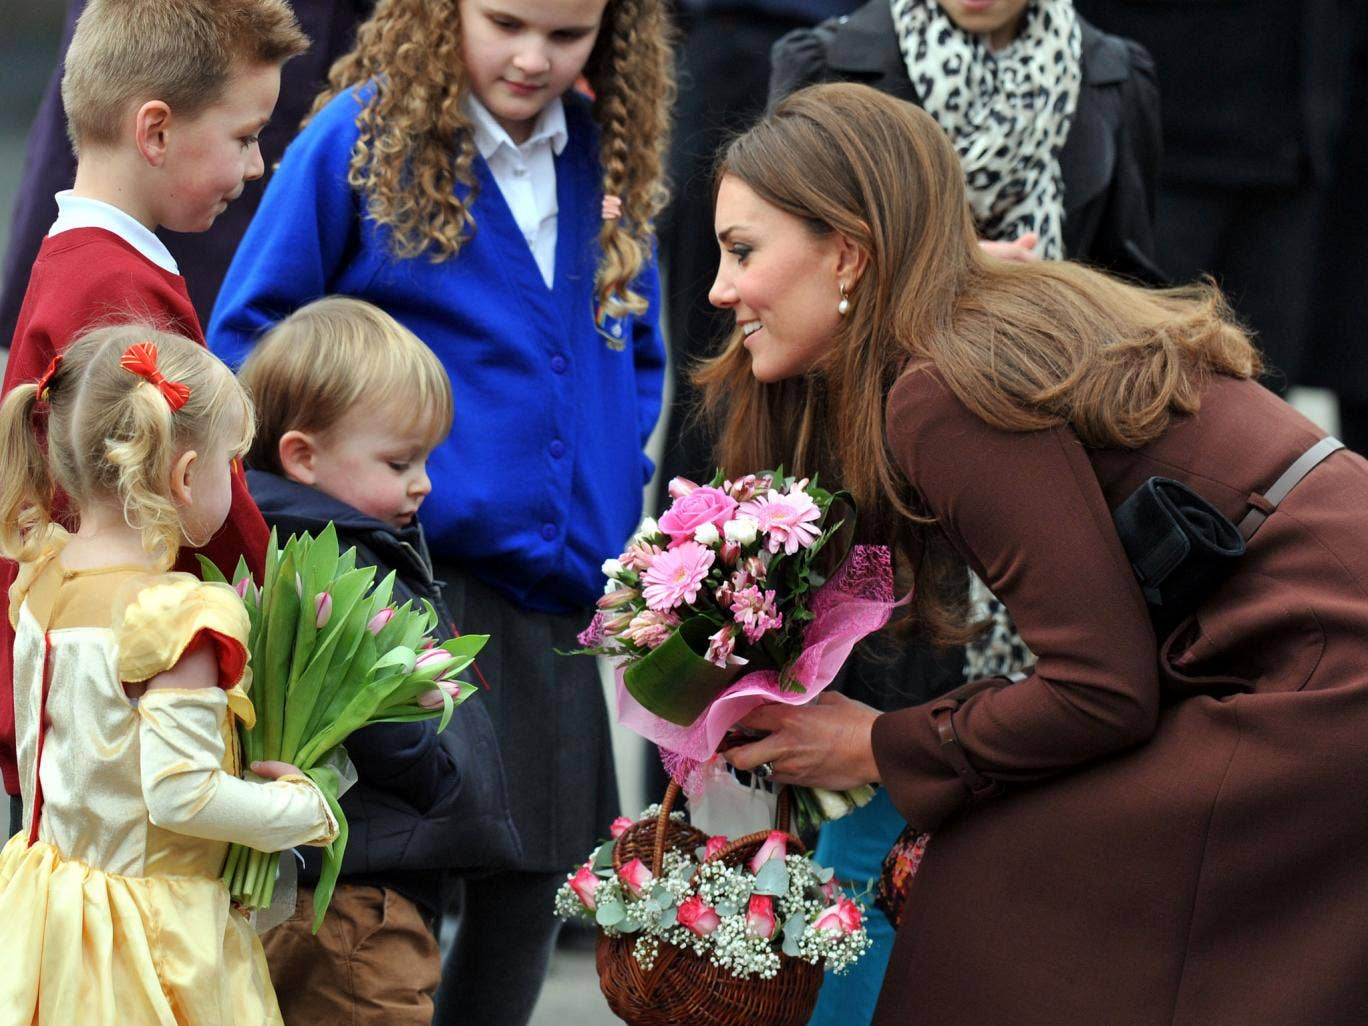 The Duchess of Cambridge may have let slip that she is expecting a daughter, while chatting to crowds during her latest official engagement, it has been reported